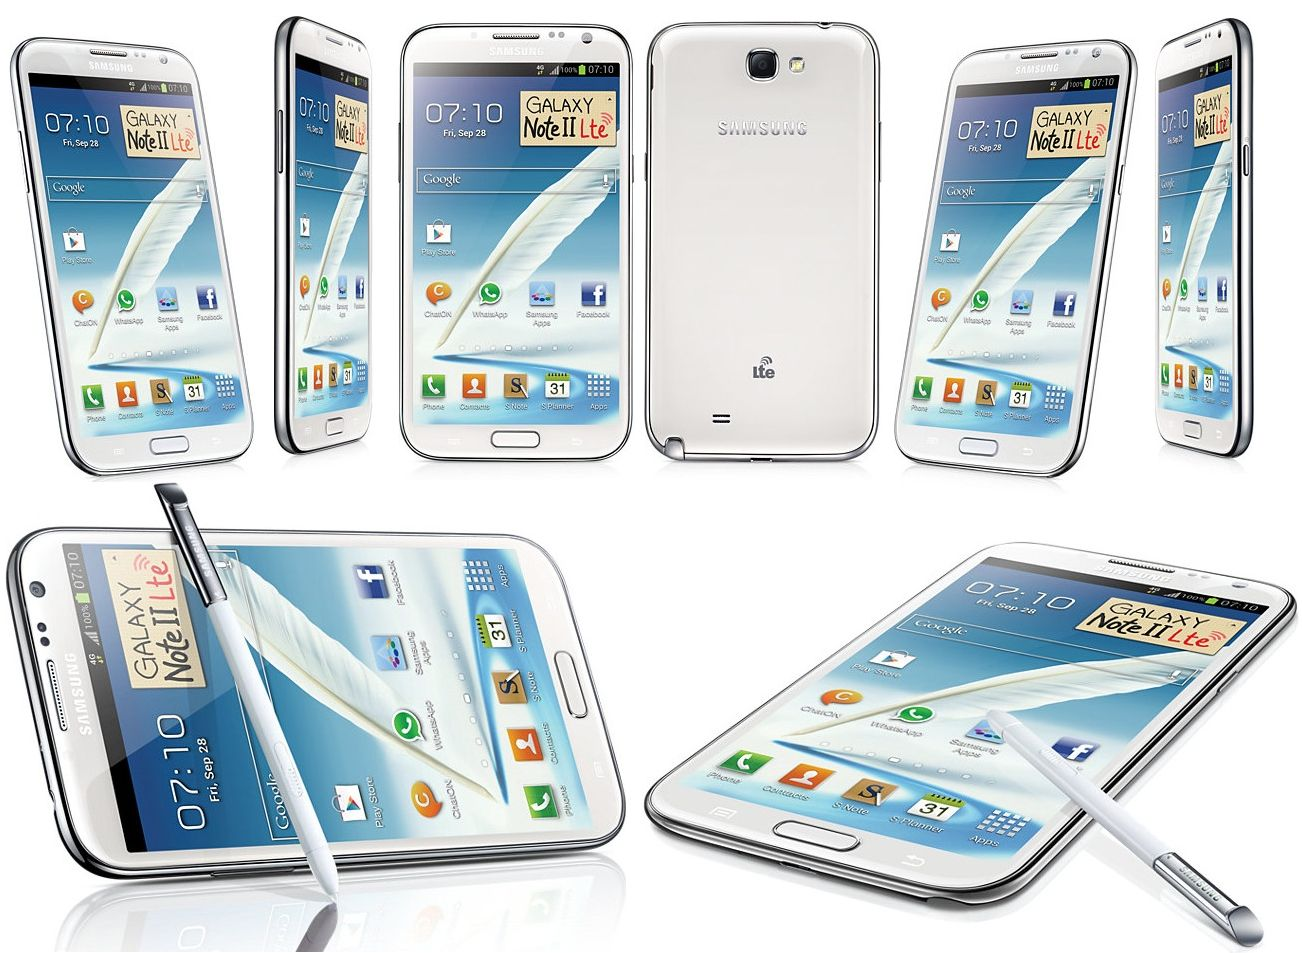 Samsung Galaxy Note 2 (Samsung N7105 NOT N7100) in Marble White - http://www.phoneslimited.co.uk/Samsung/Galaxy+Note+2+White+LTE.html